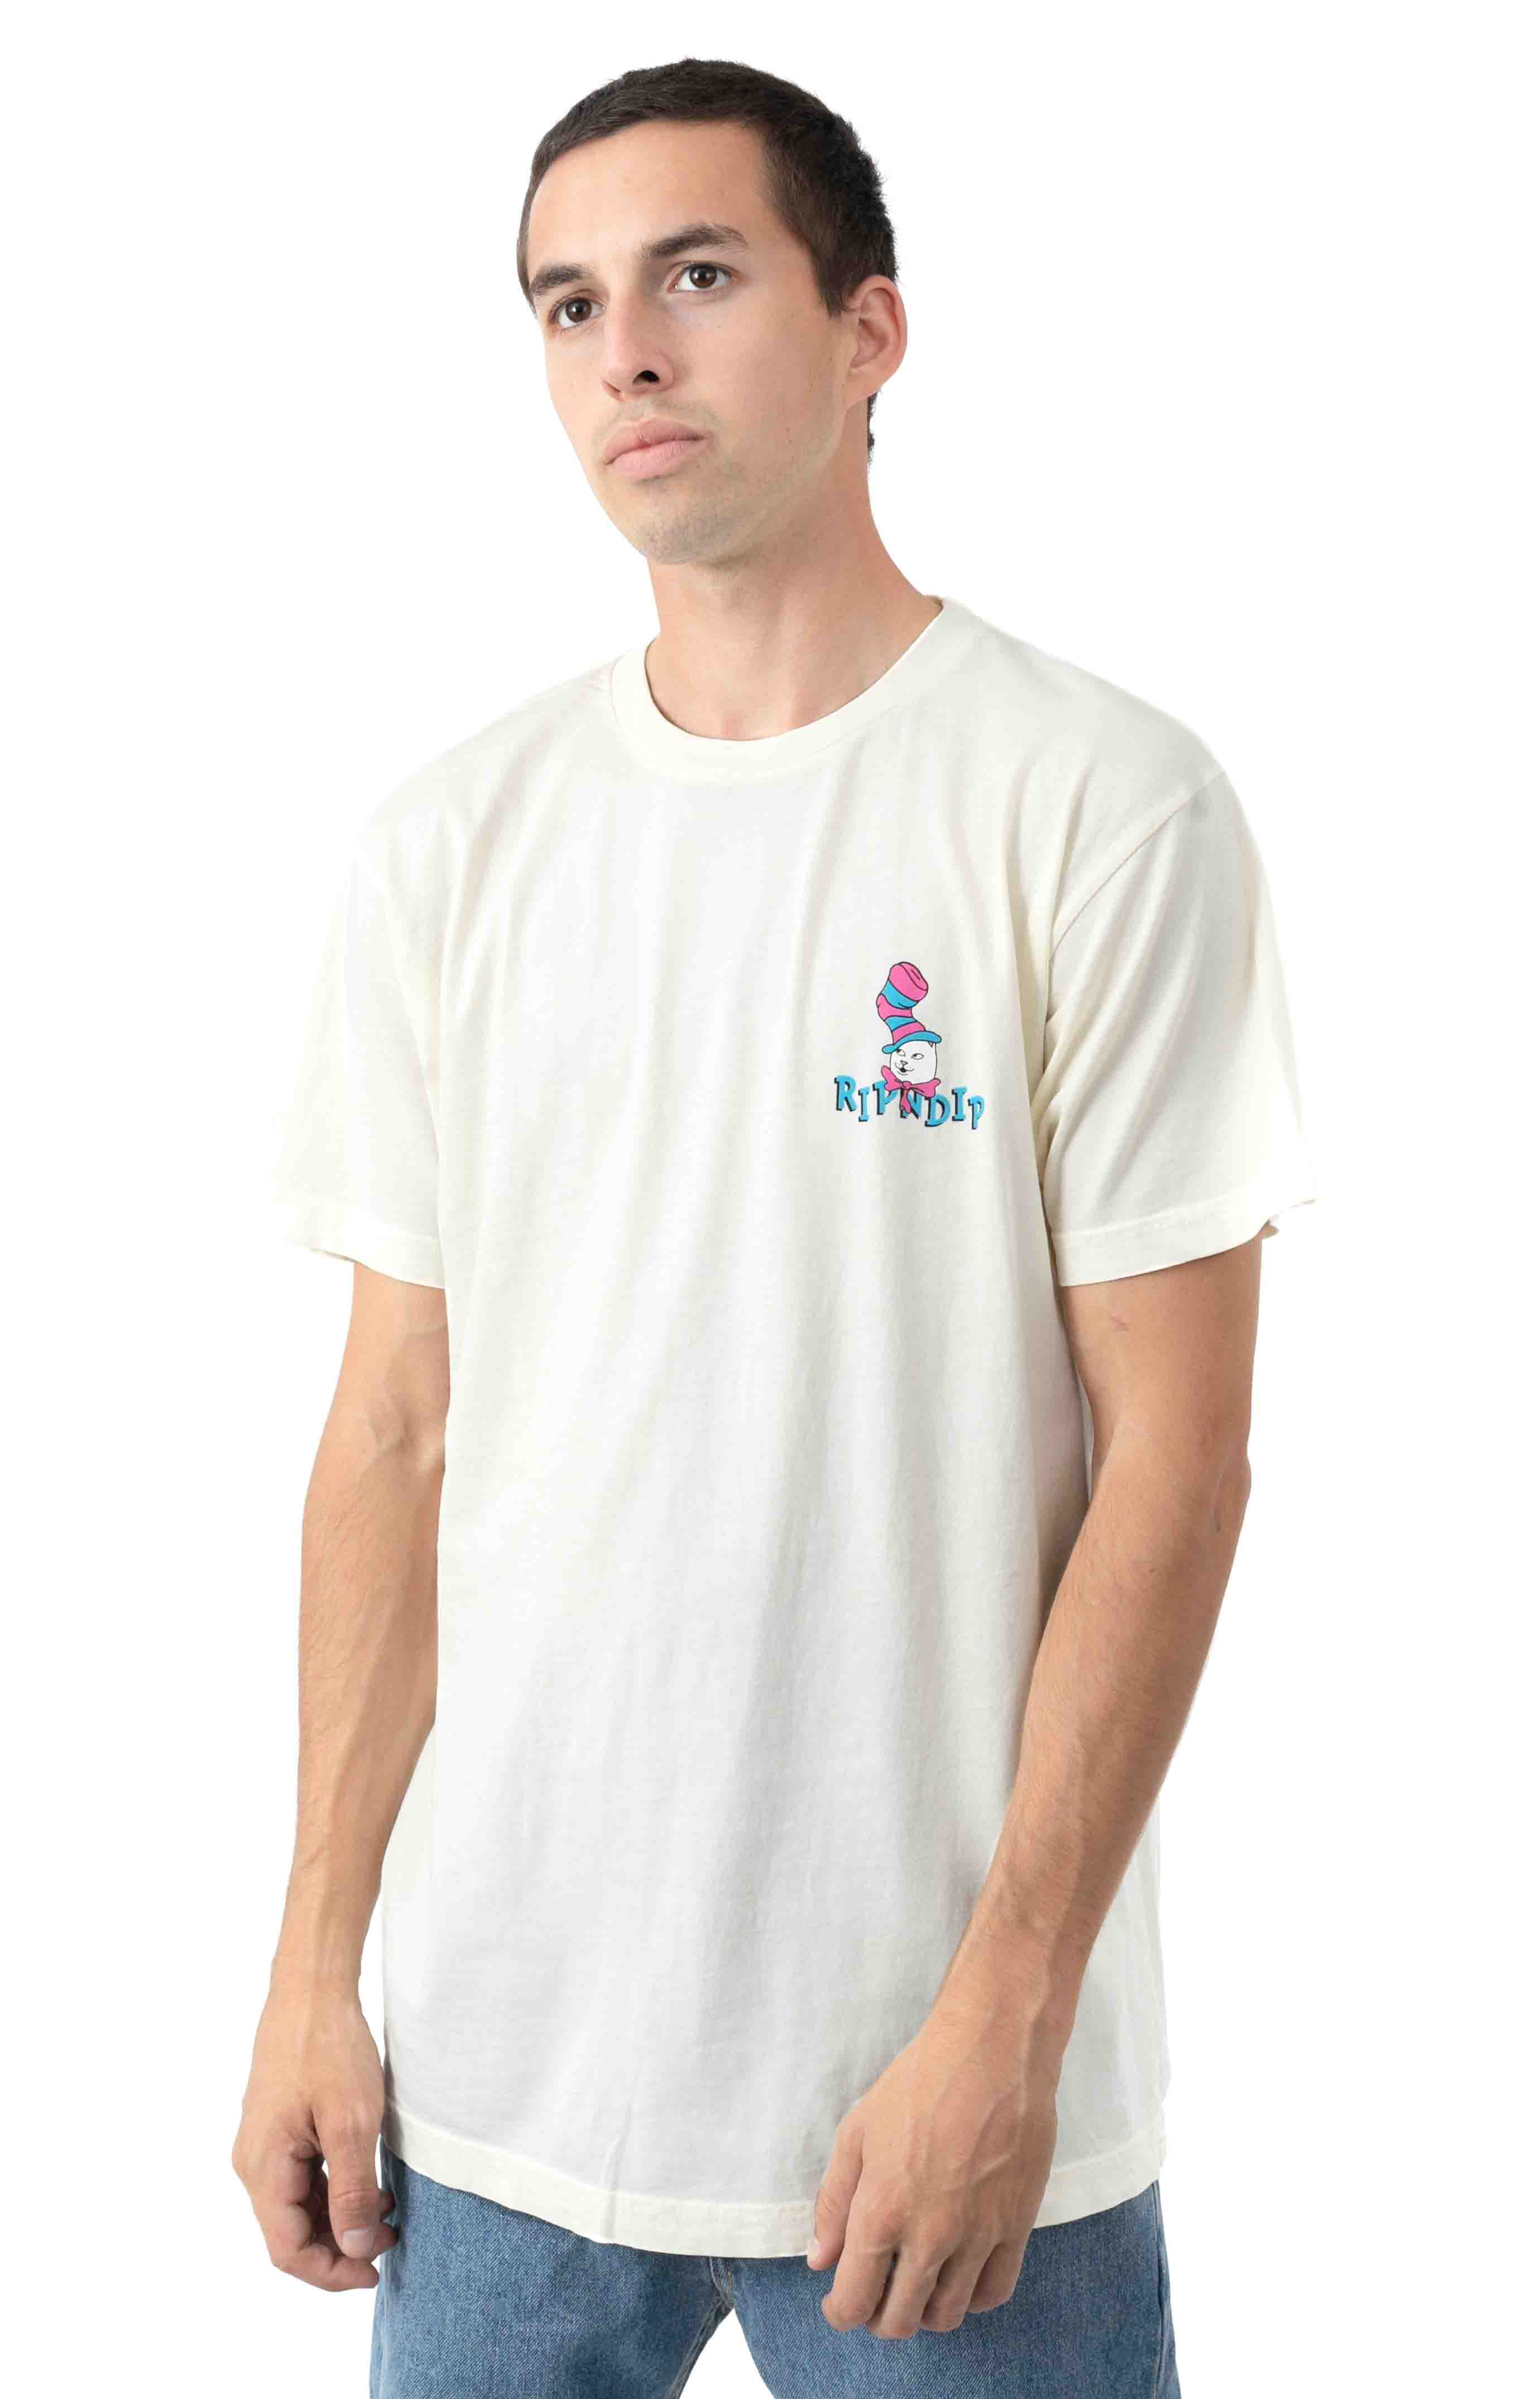 Nerm In a Hat T-Shirt - Natural  2